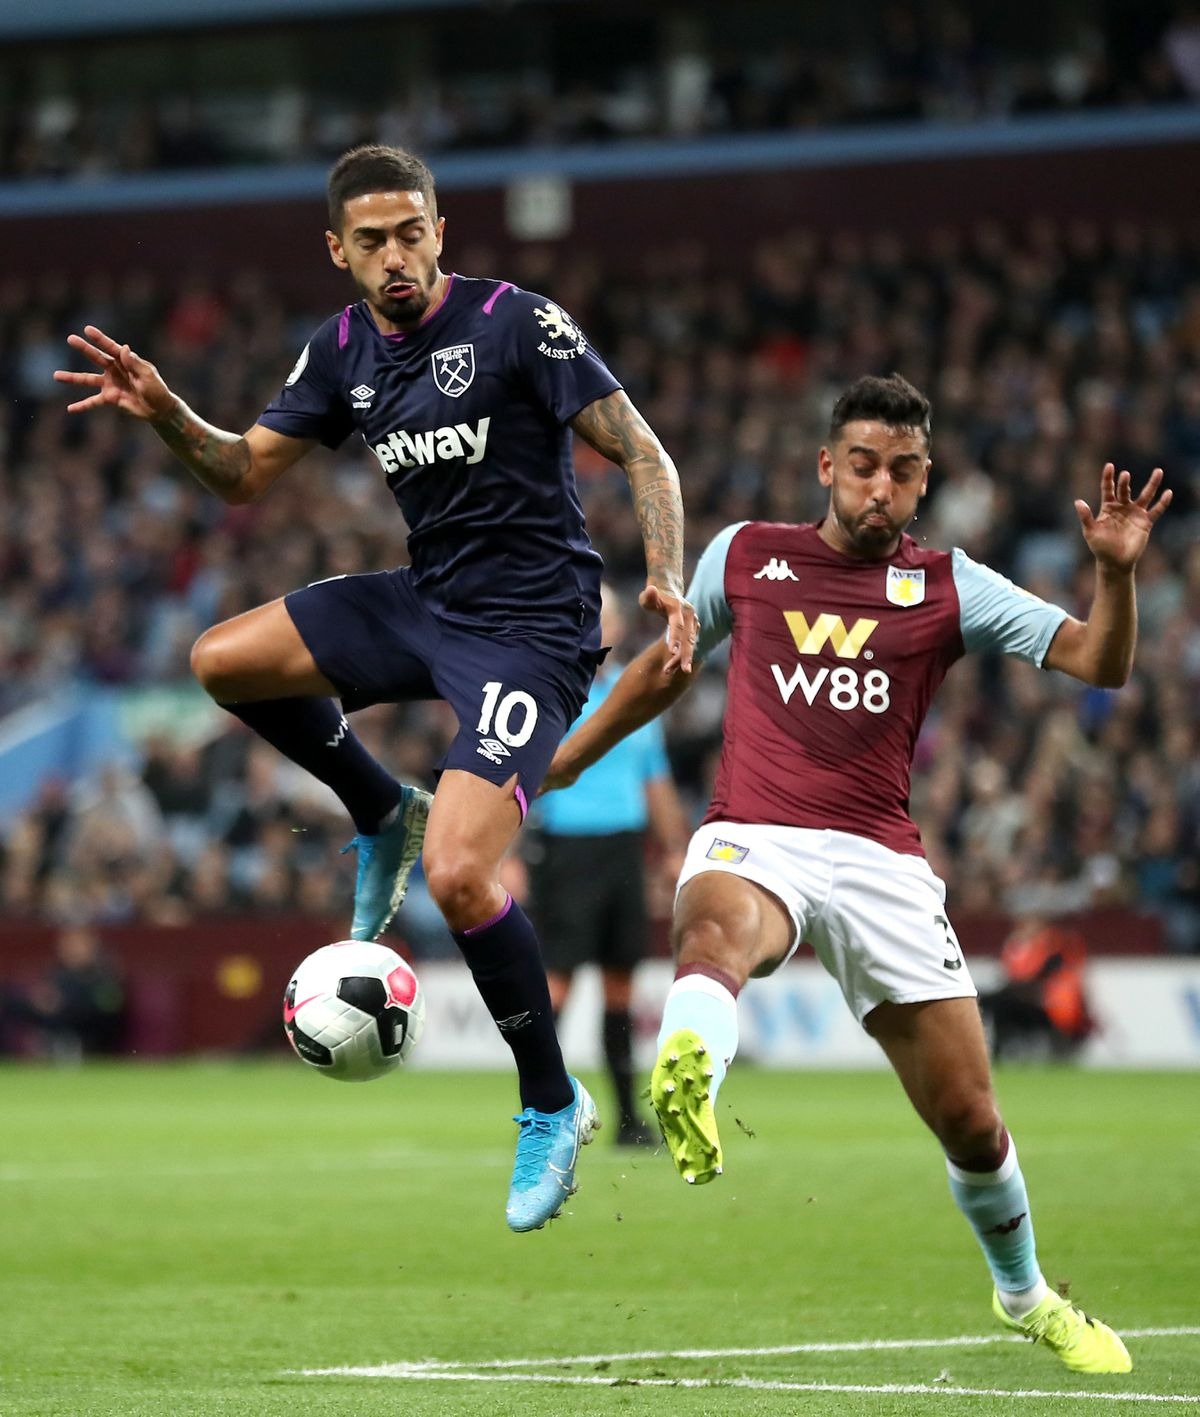 Aston Villa 0 West Ham 0 - Report and pictures | Express ...